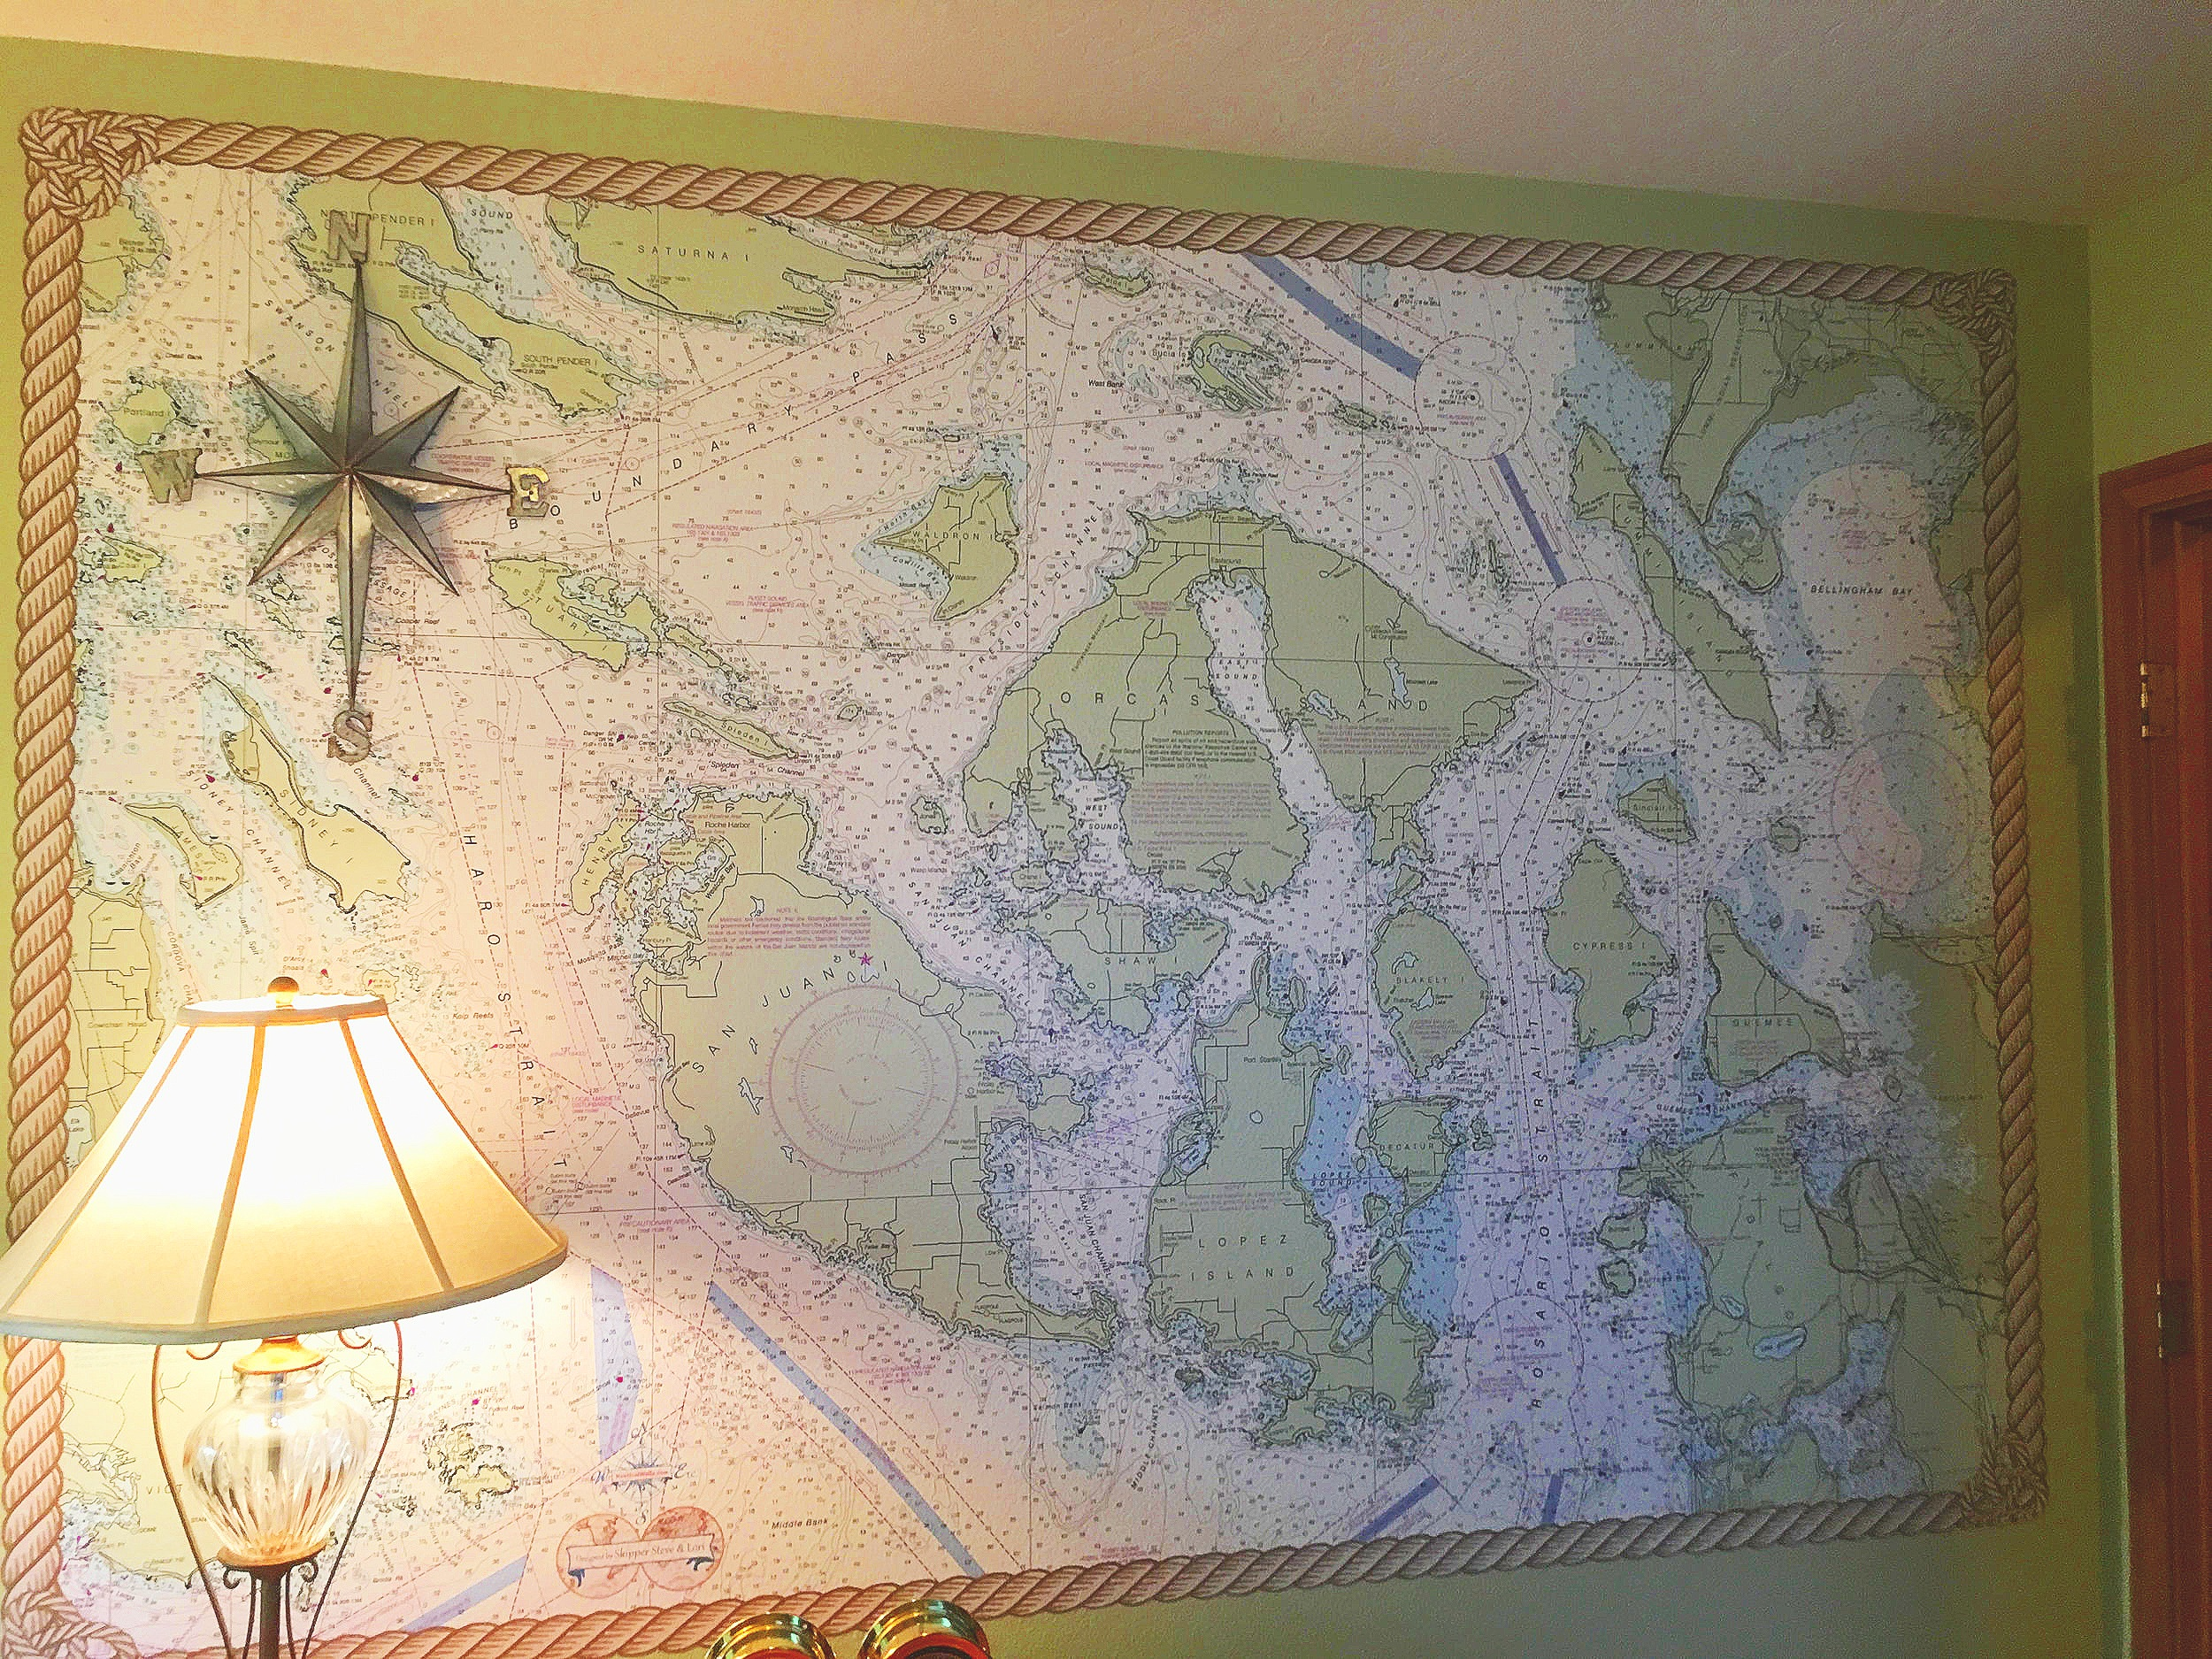 This is the mural in our office! We created the rope border as part of the mural. The San Juan Islands are Skipper's favorite sailing waters, and make a splended wall. The steampunk compas rose was found at Hobby Lobby..